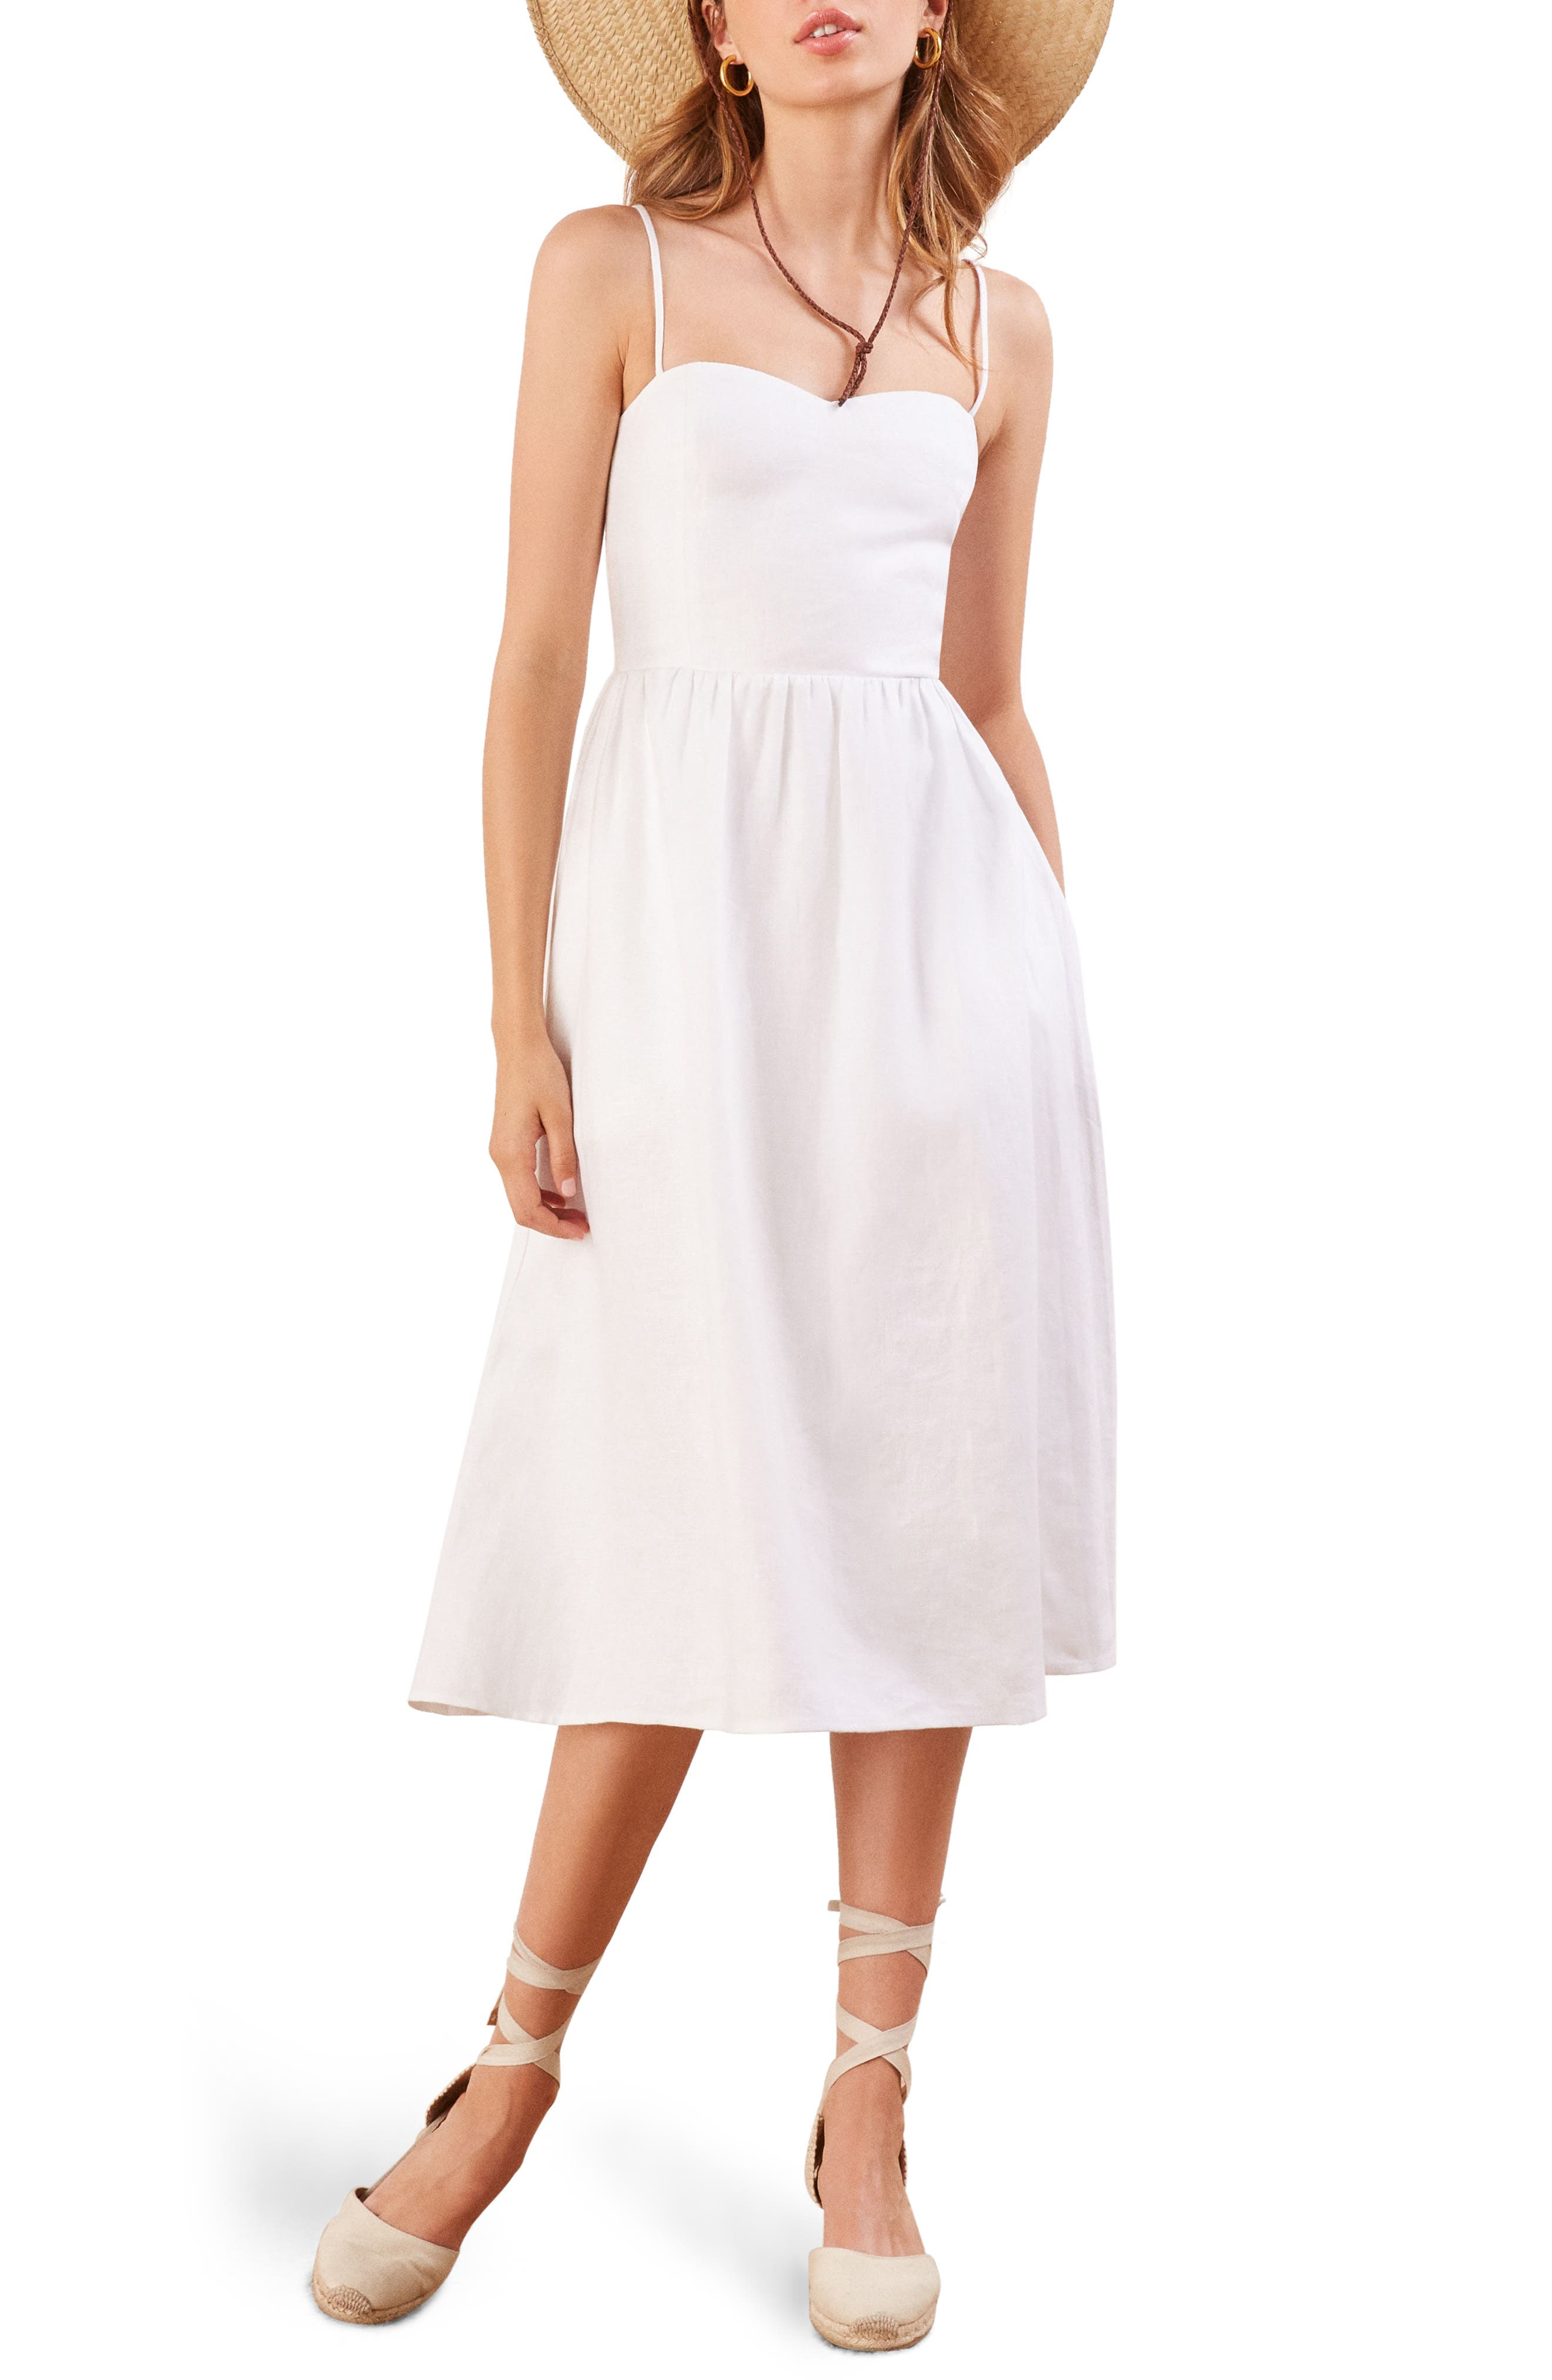 Olivia Linen Midi Dress,                         Main,                         color, 100